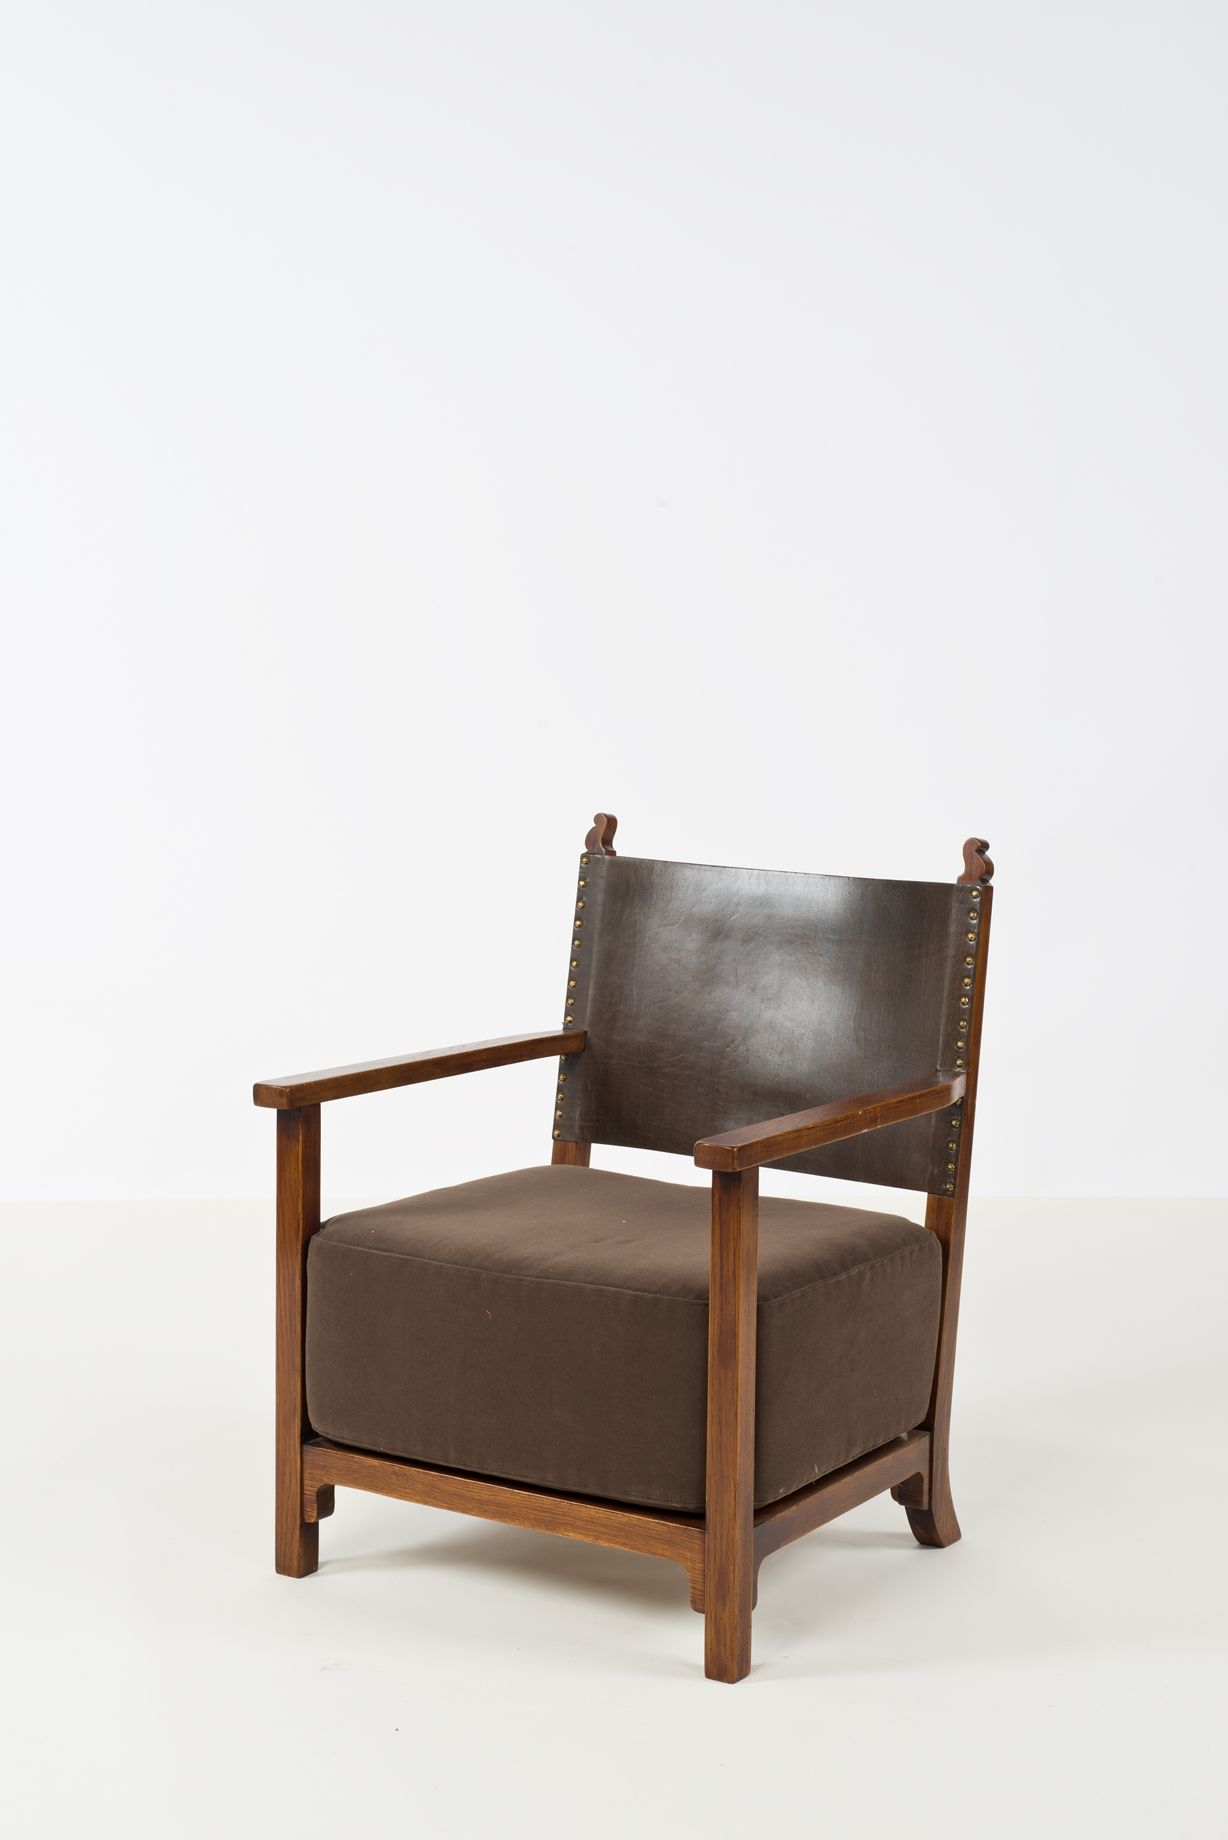 Adolf Loos Wood Leather And Brass Armchair For F O Schmidt  # Adolf Loos Muebles